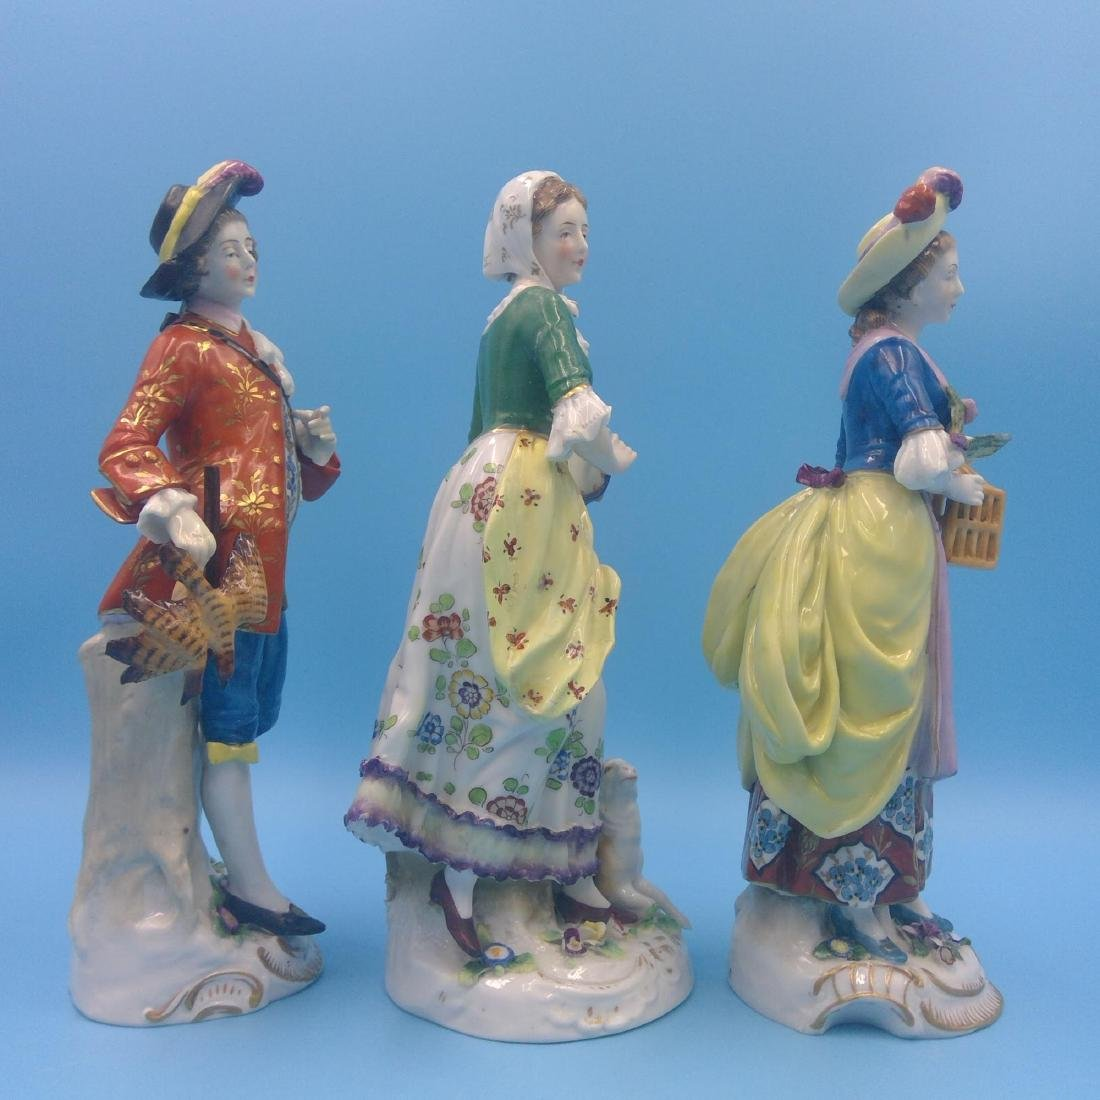 GROUP OF 3 CHELSEA 18thC ENGLISH PORCELAIN FIGURES - 4